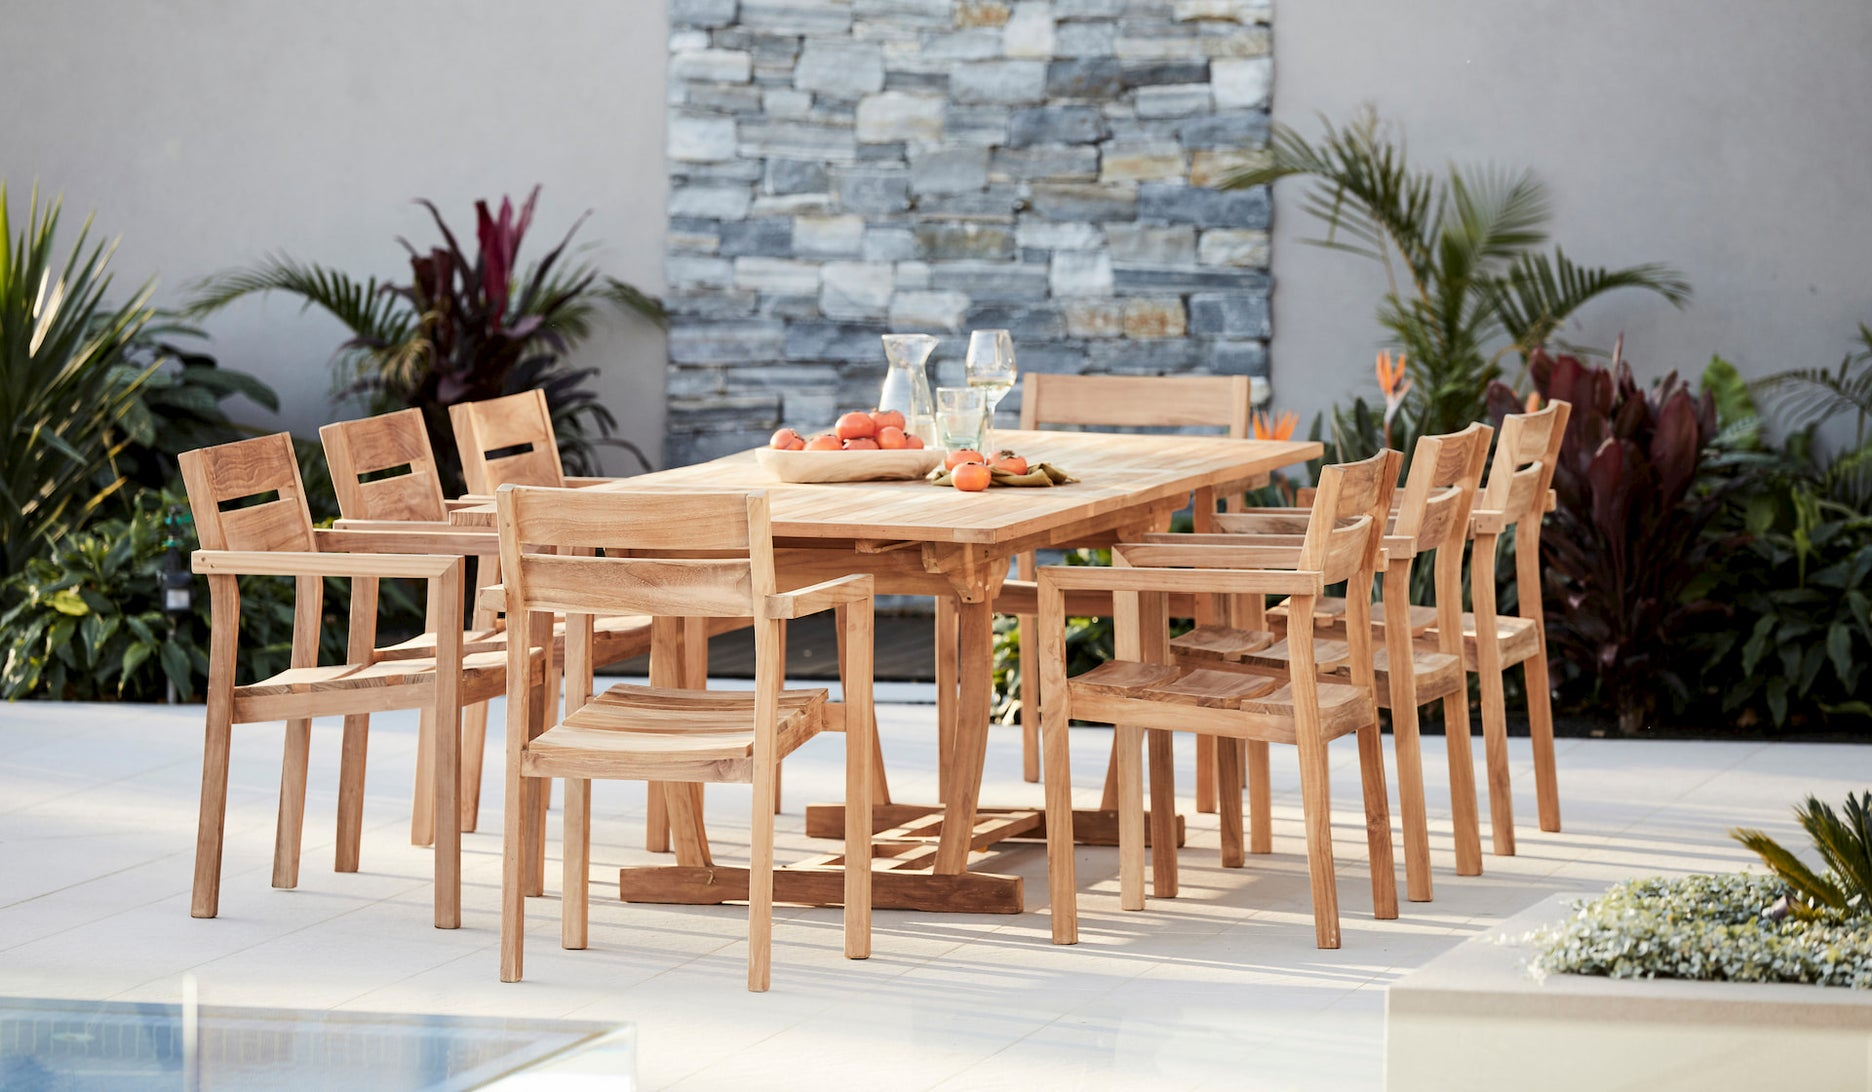 6 Reasons To Buy Outdoor Teak Furniture Woodbury Furniture